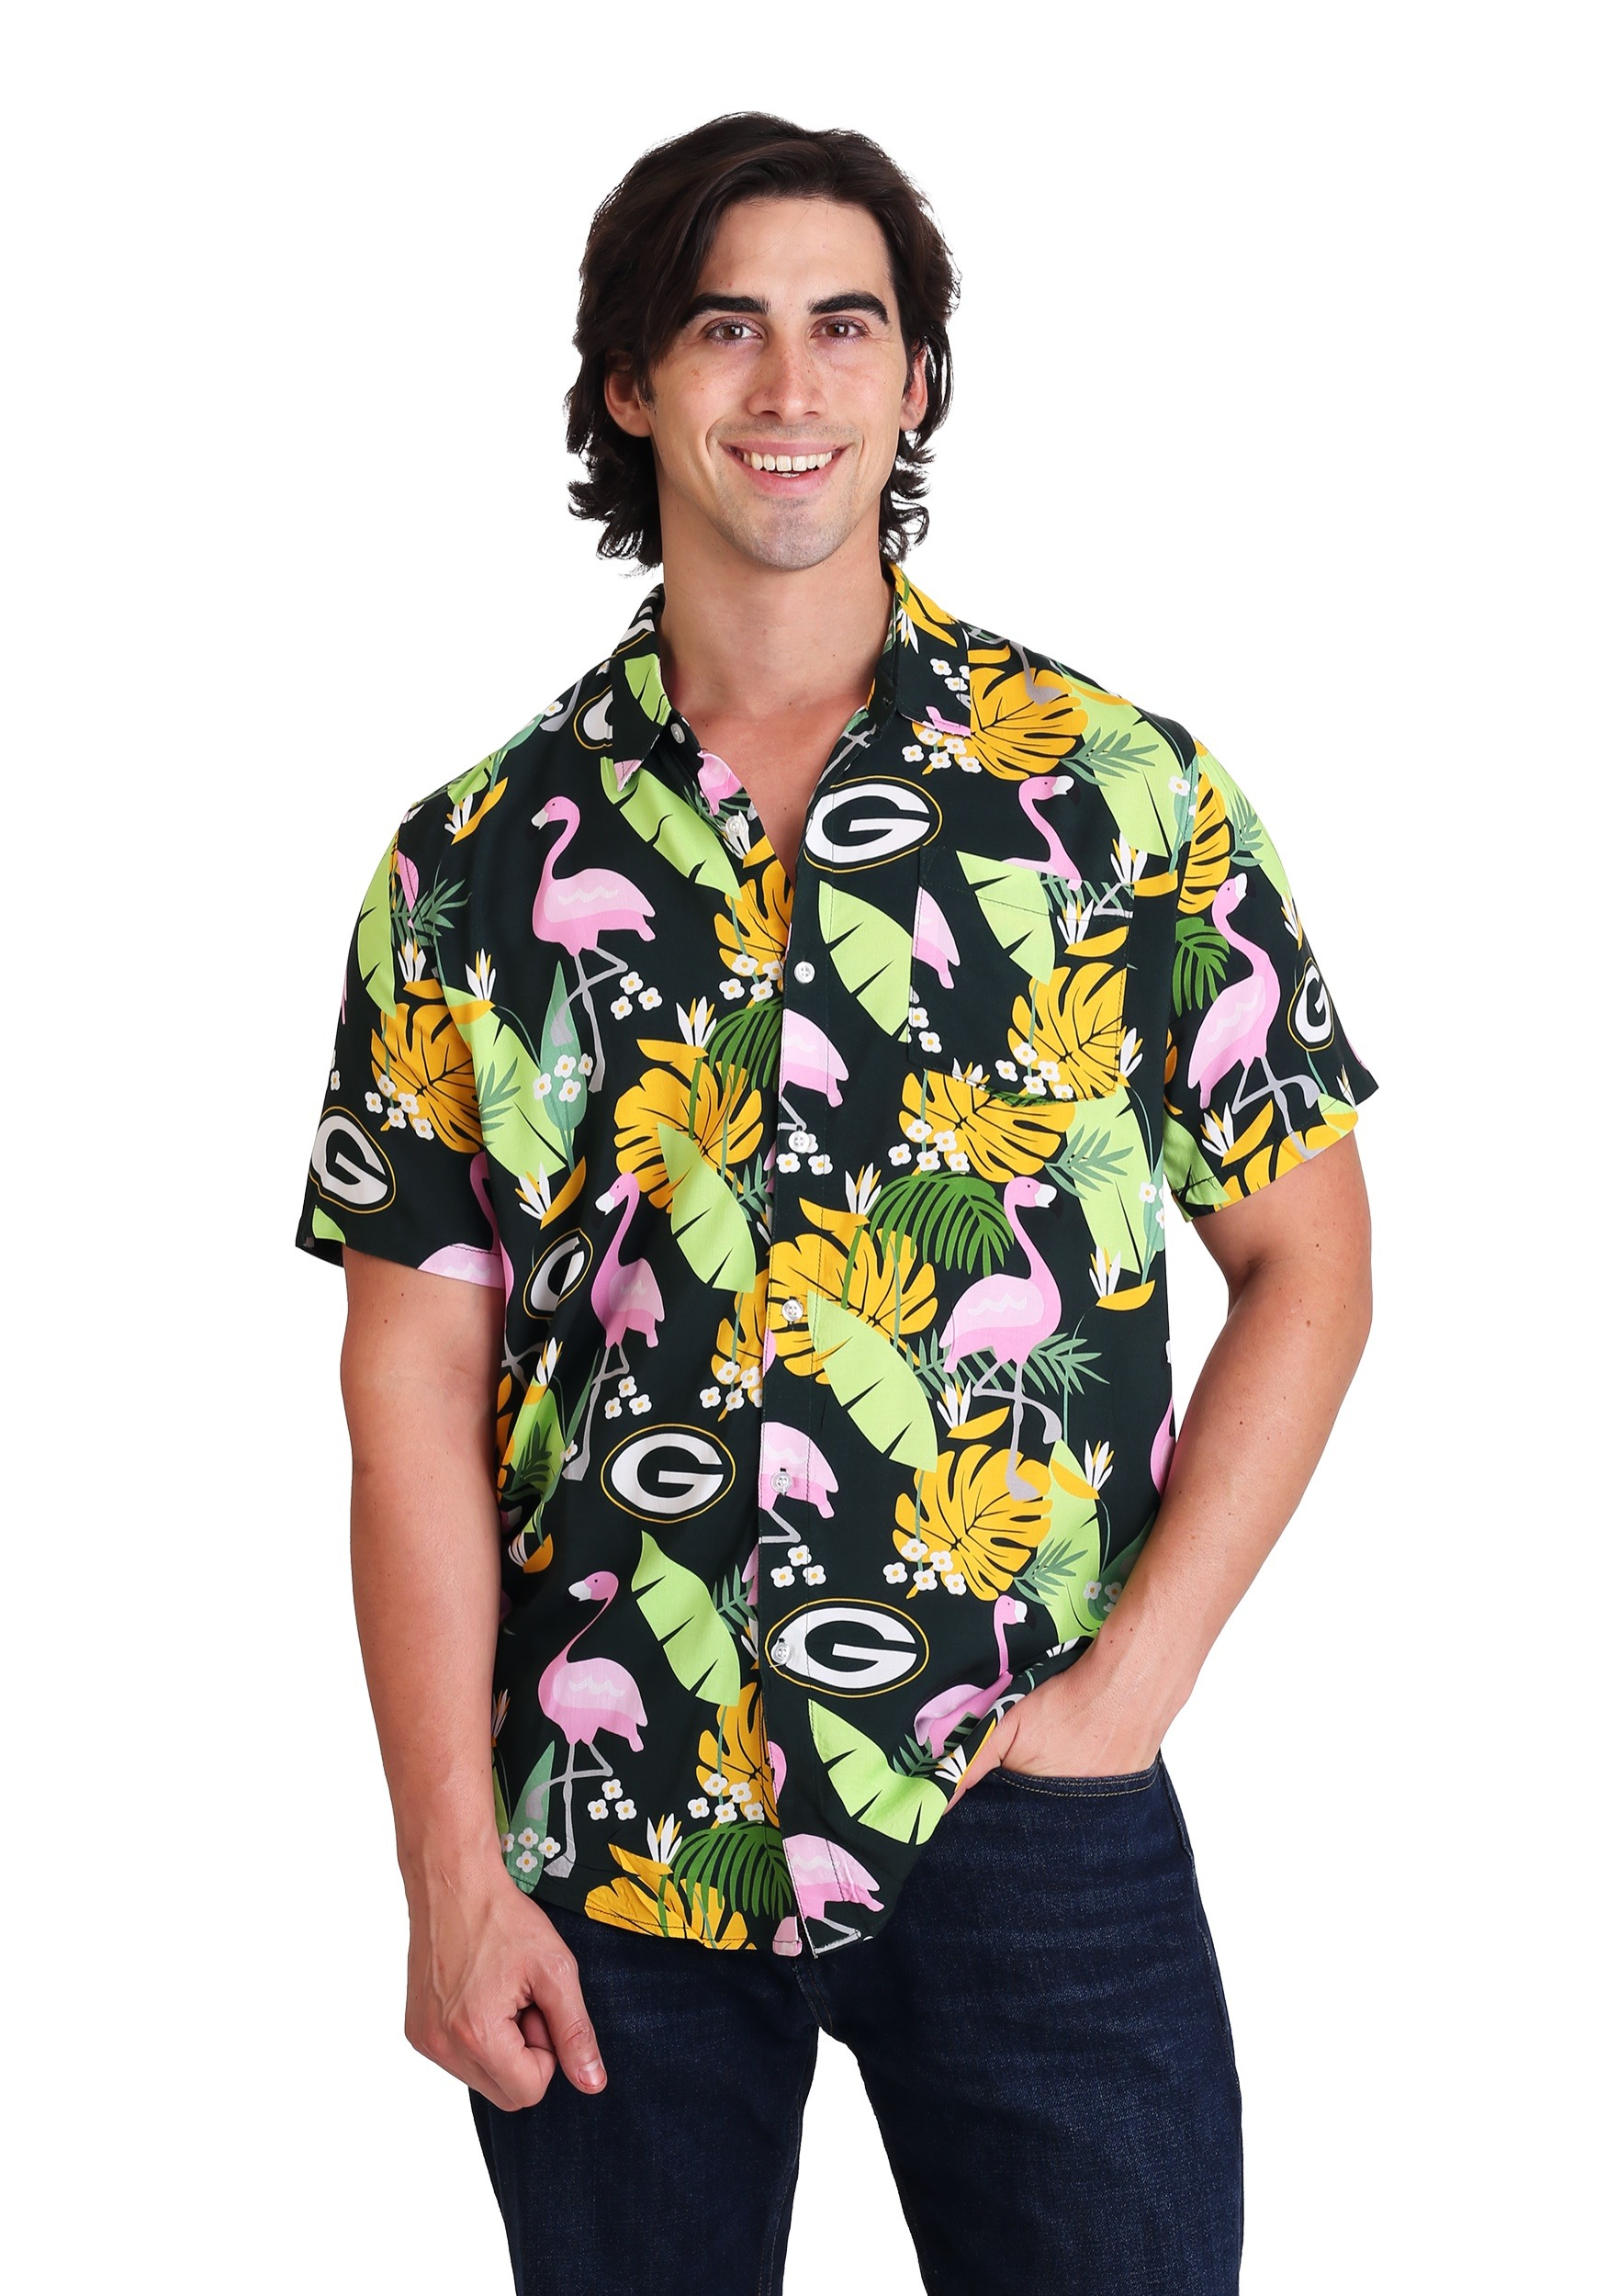 d880899f Green Bay Packers Floral Shirt